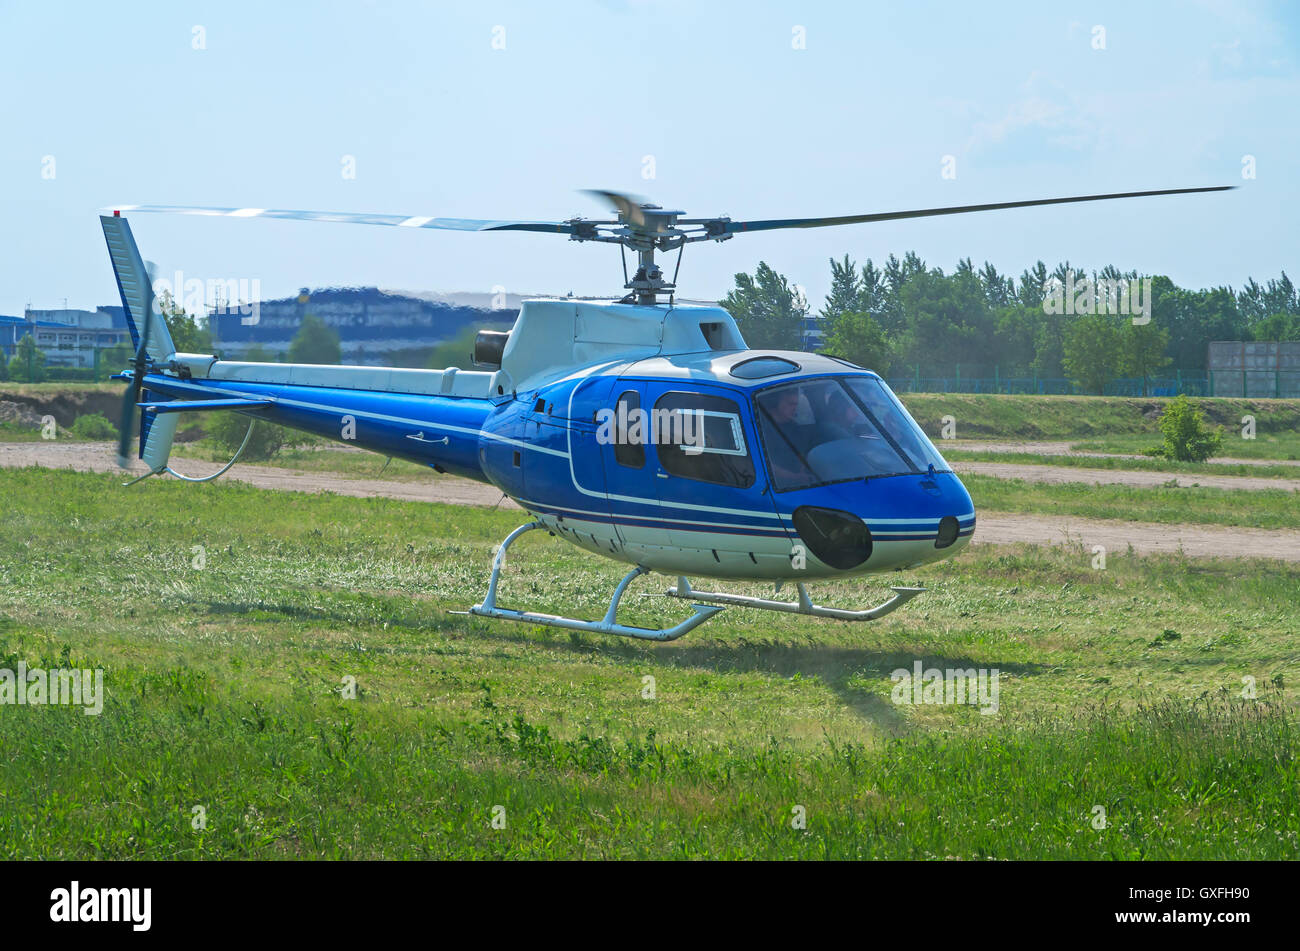 Takeoff copter after an emergency landing on the green glade in the suburbs - Stock Image